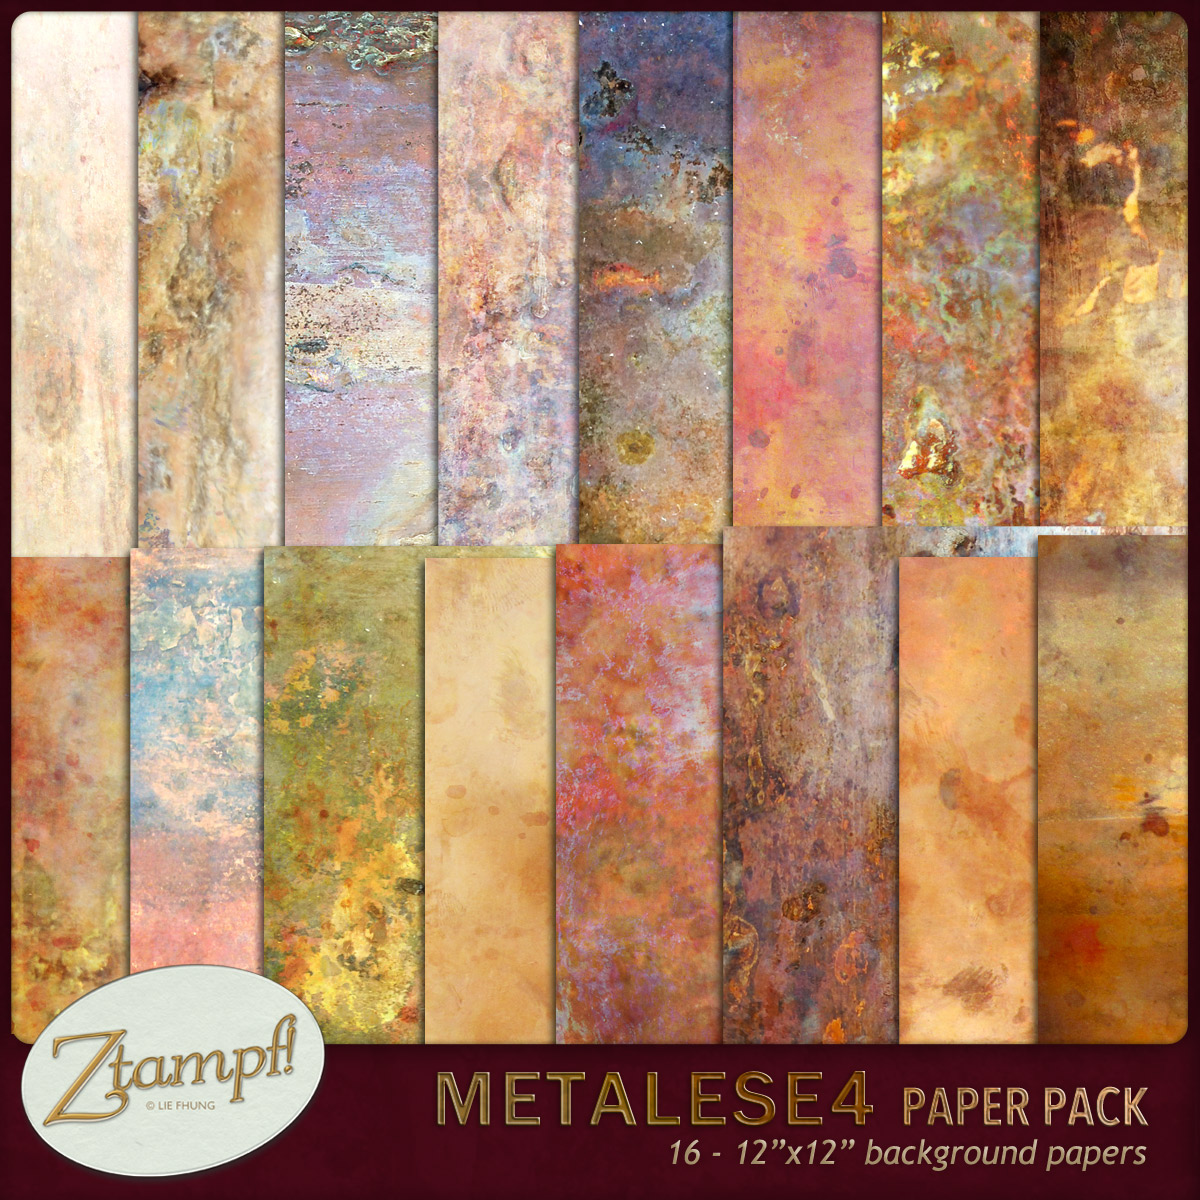 Metalese Four Backgrounds Metalese Four Backgrounds [Backgrounds